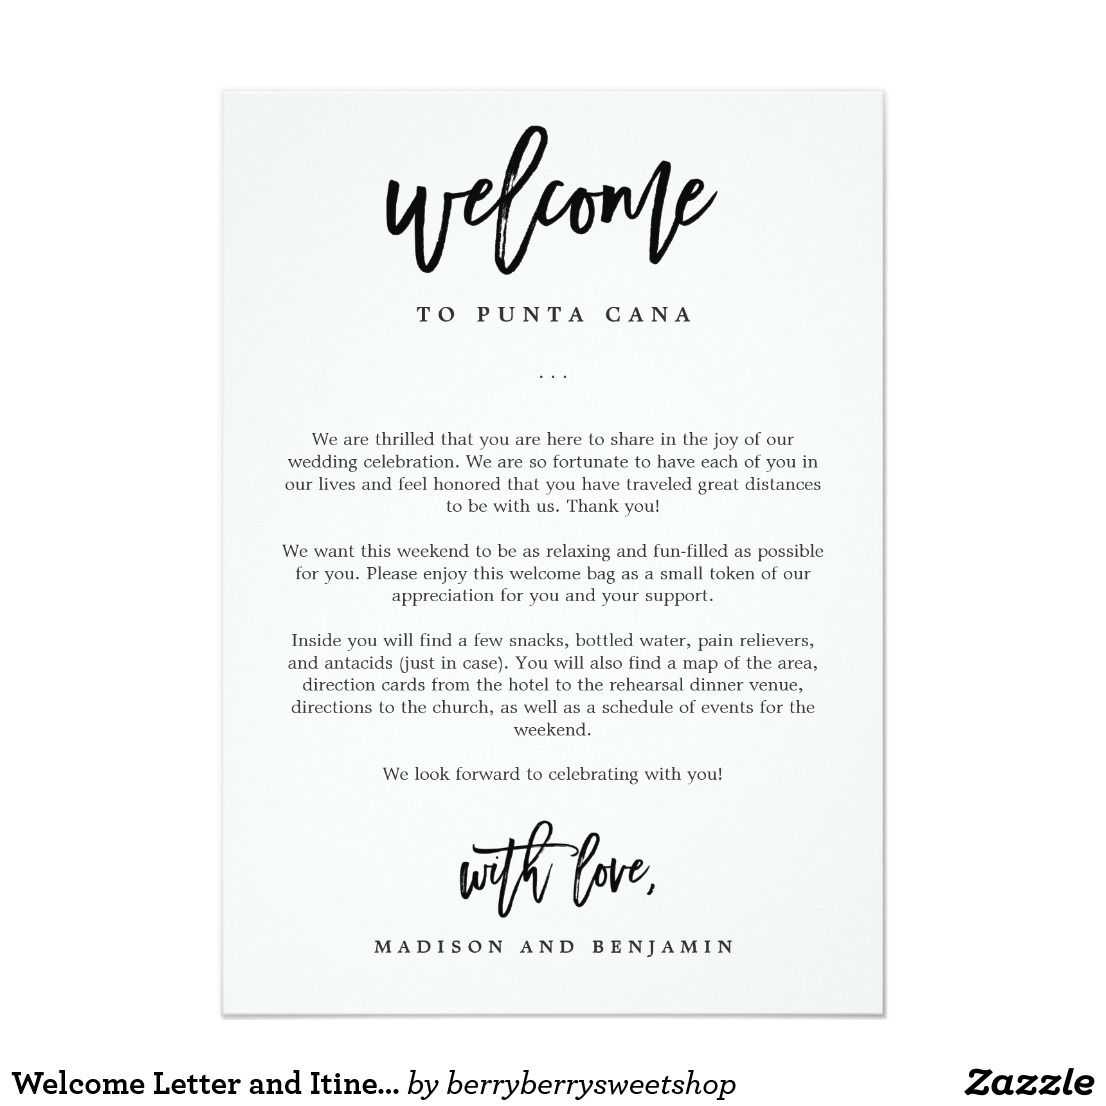 Welcome Letter And Itinerary Wedding Welcome Bag Card Z And P